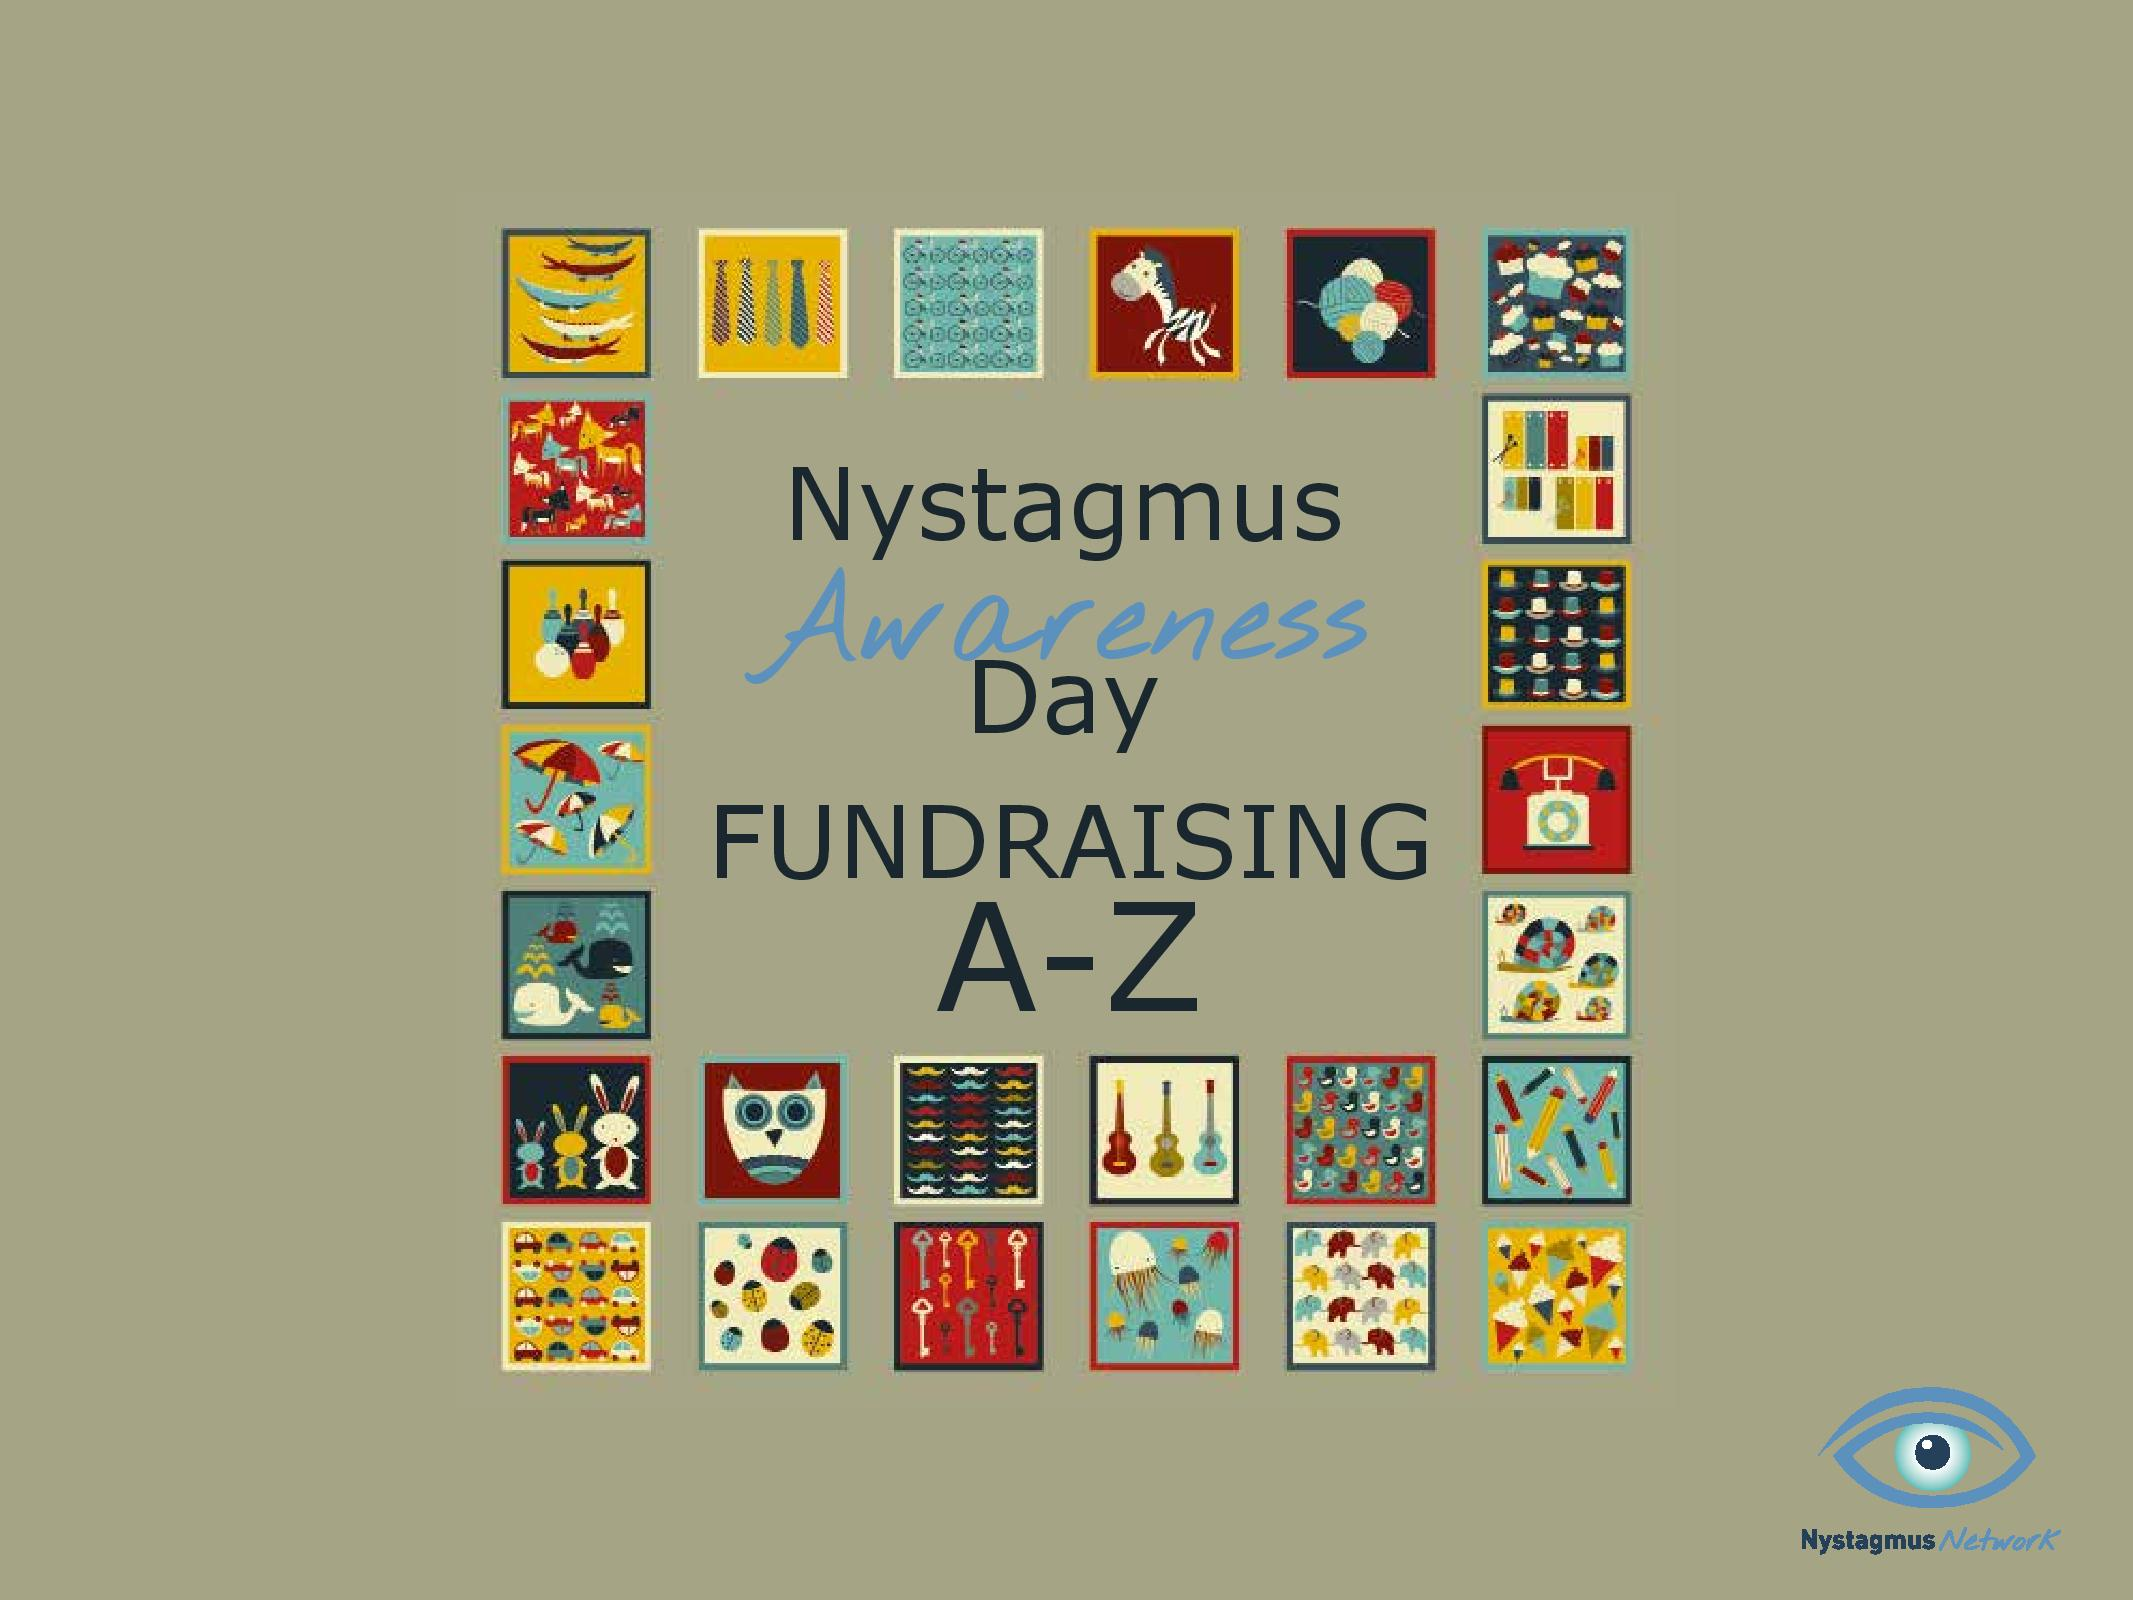 Front cover of the Nystagmus Awareness Day fundraising A-Z booklet